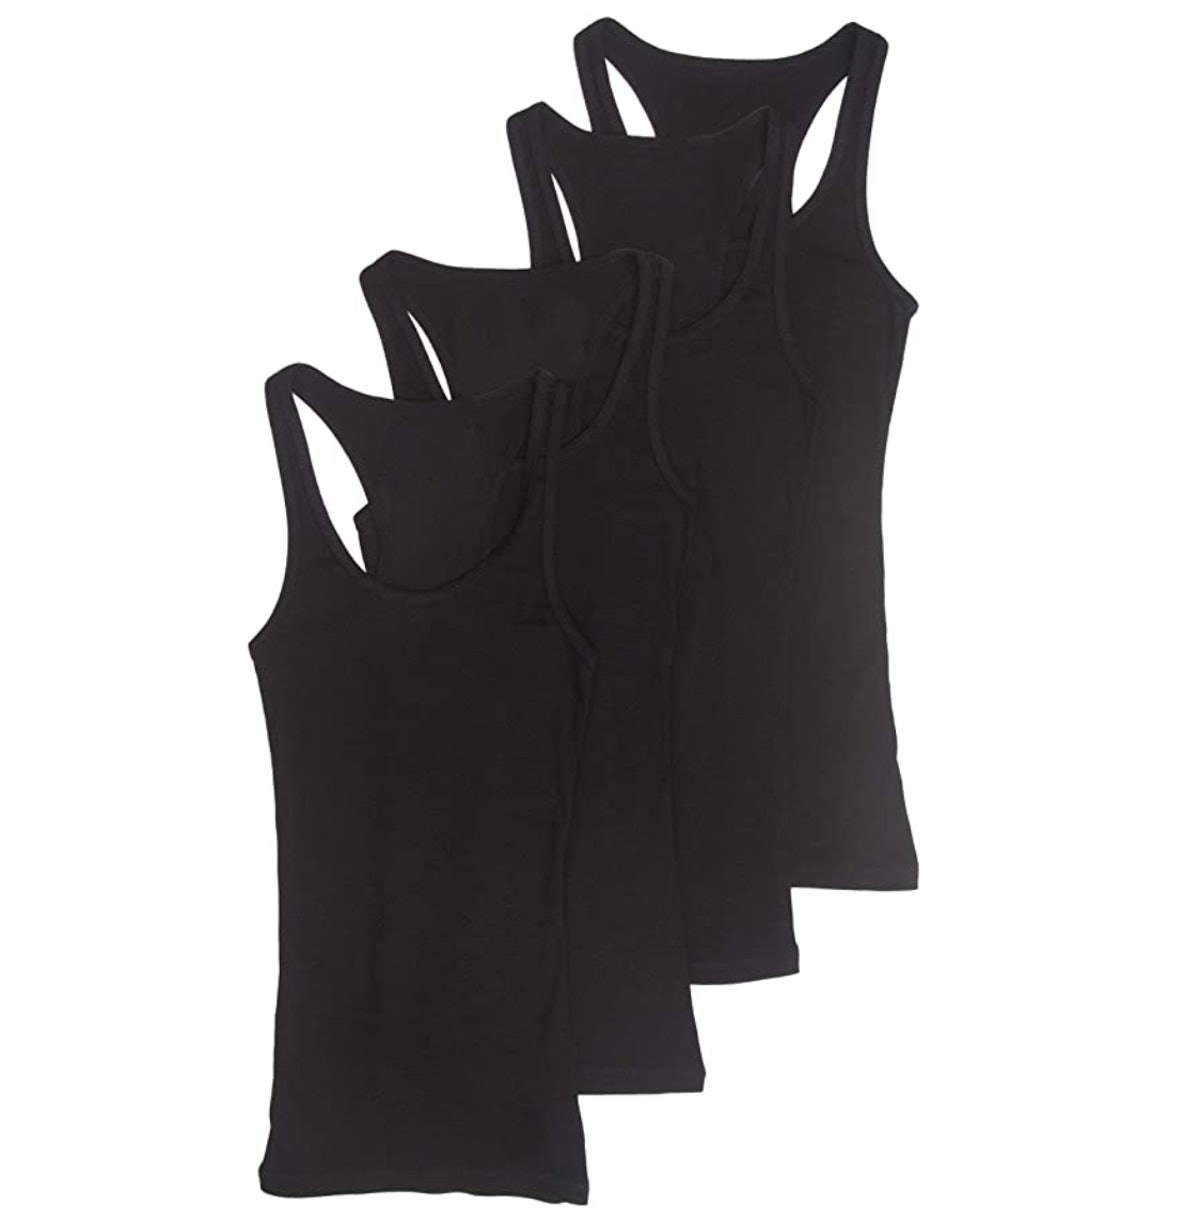 Zenana Outfitters Basic Ribbed Racerback Tank Top (4-Pack)